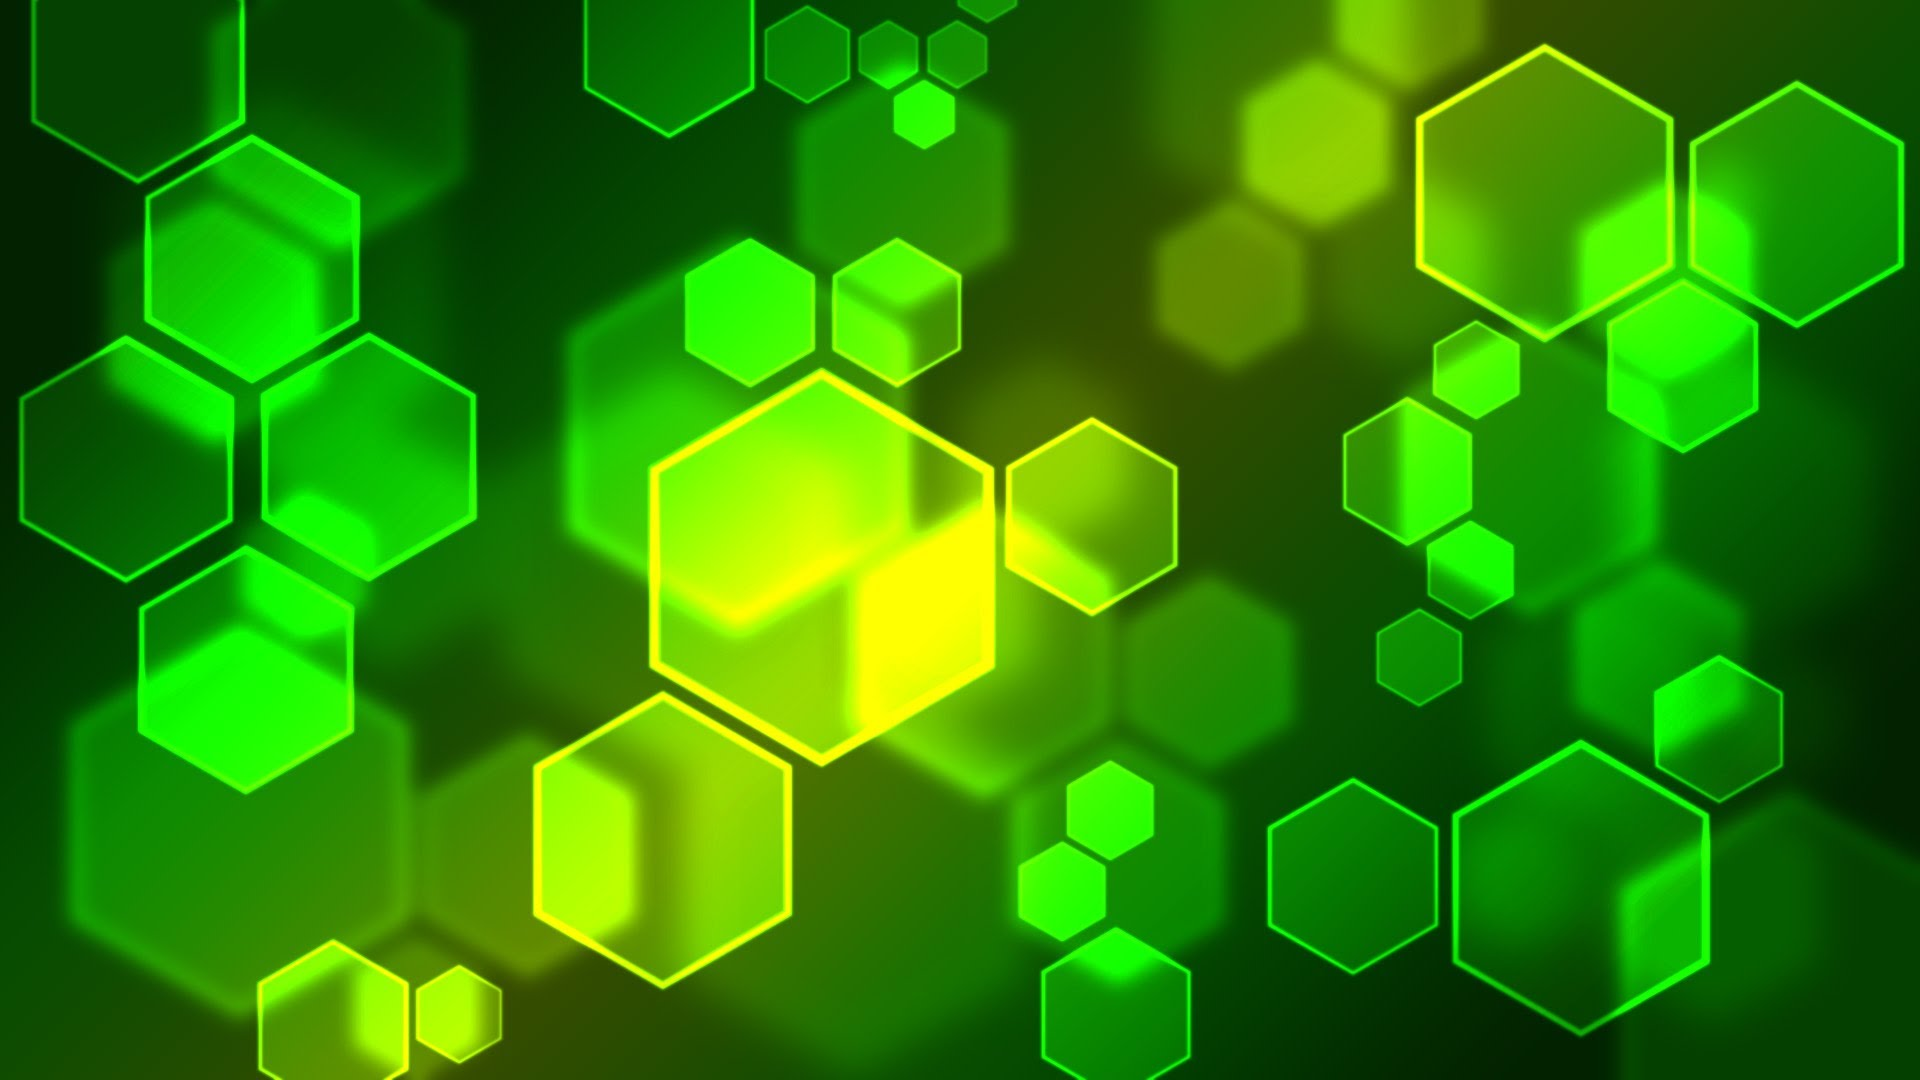 Magnificent Hexagons Wallpaper Full HD Pictures